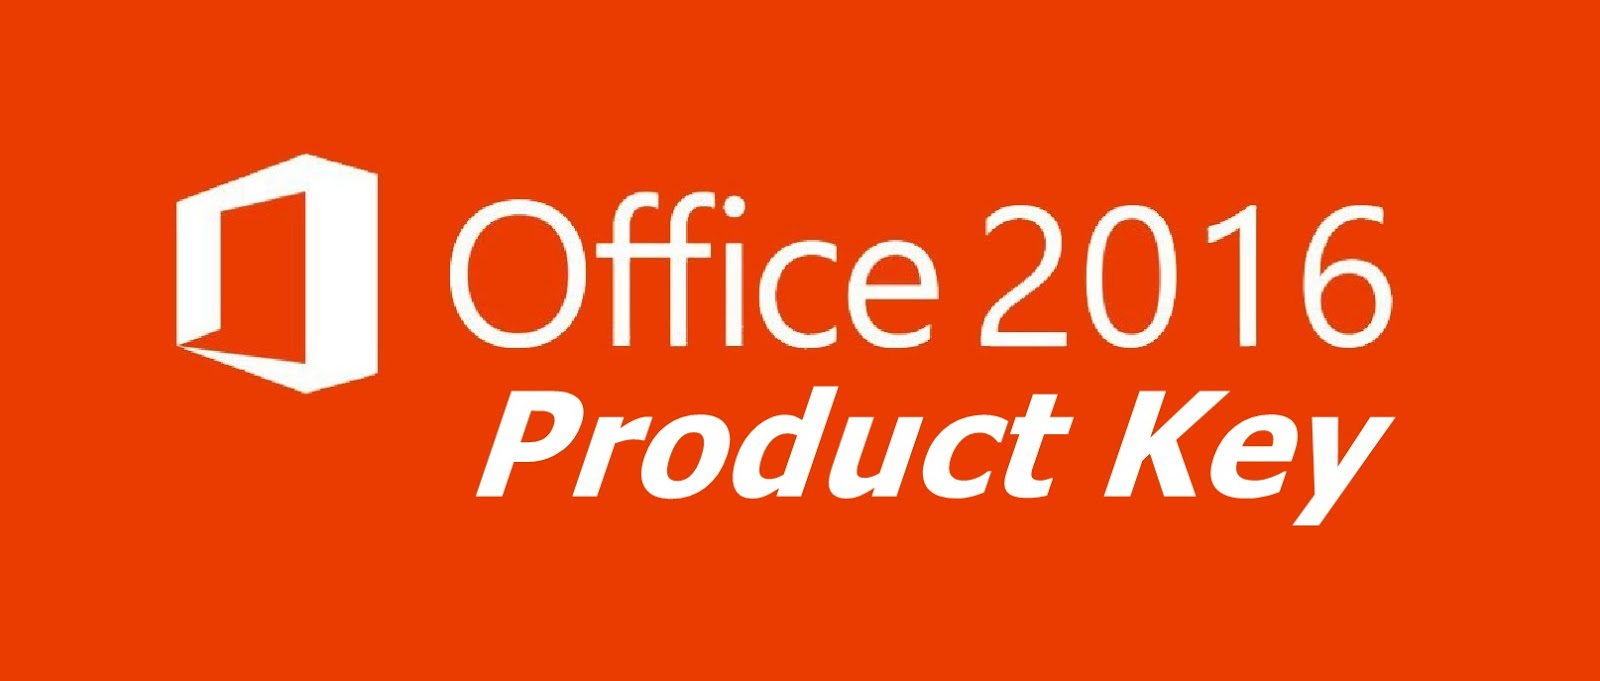 office 2016 cd key buy